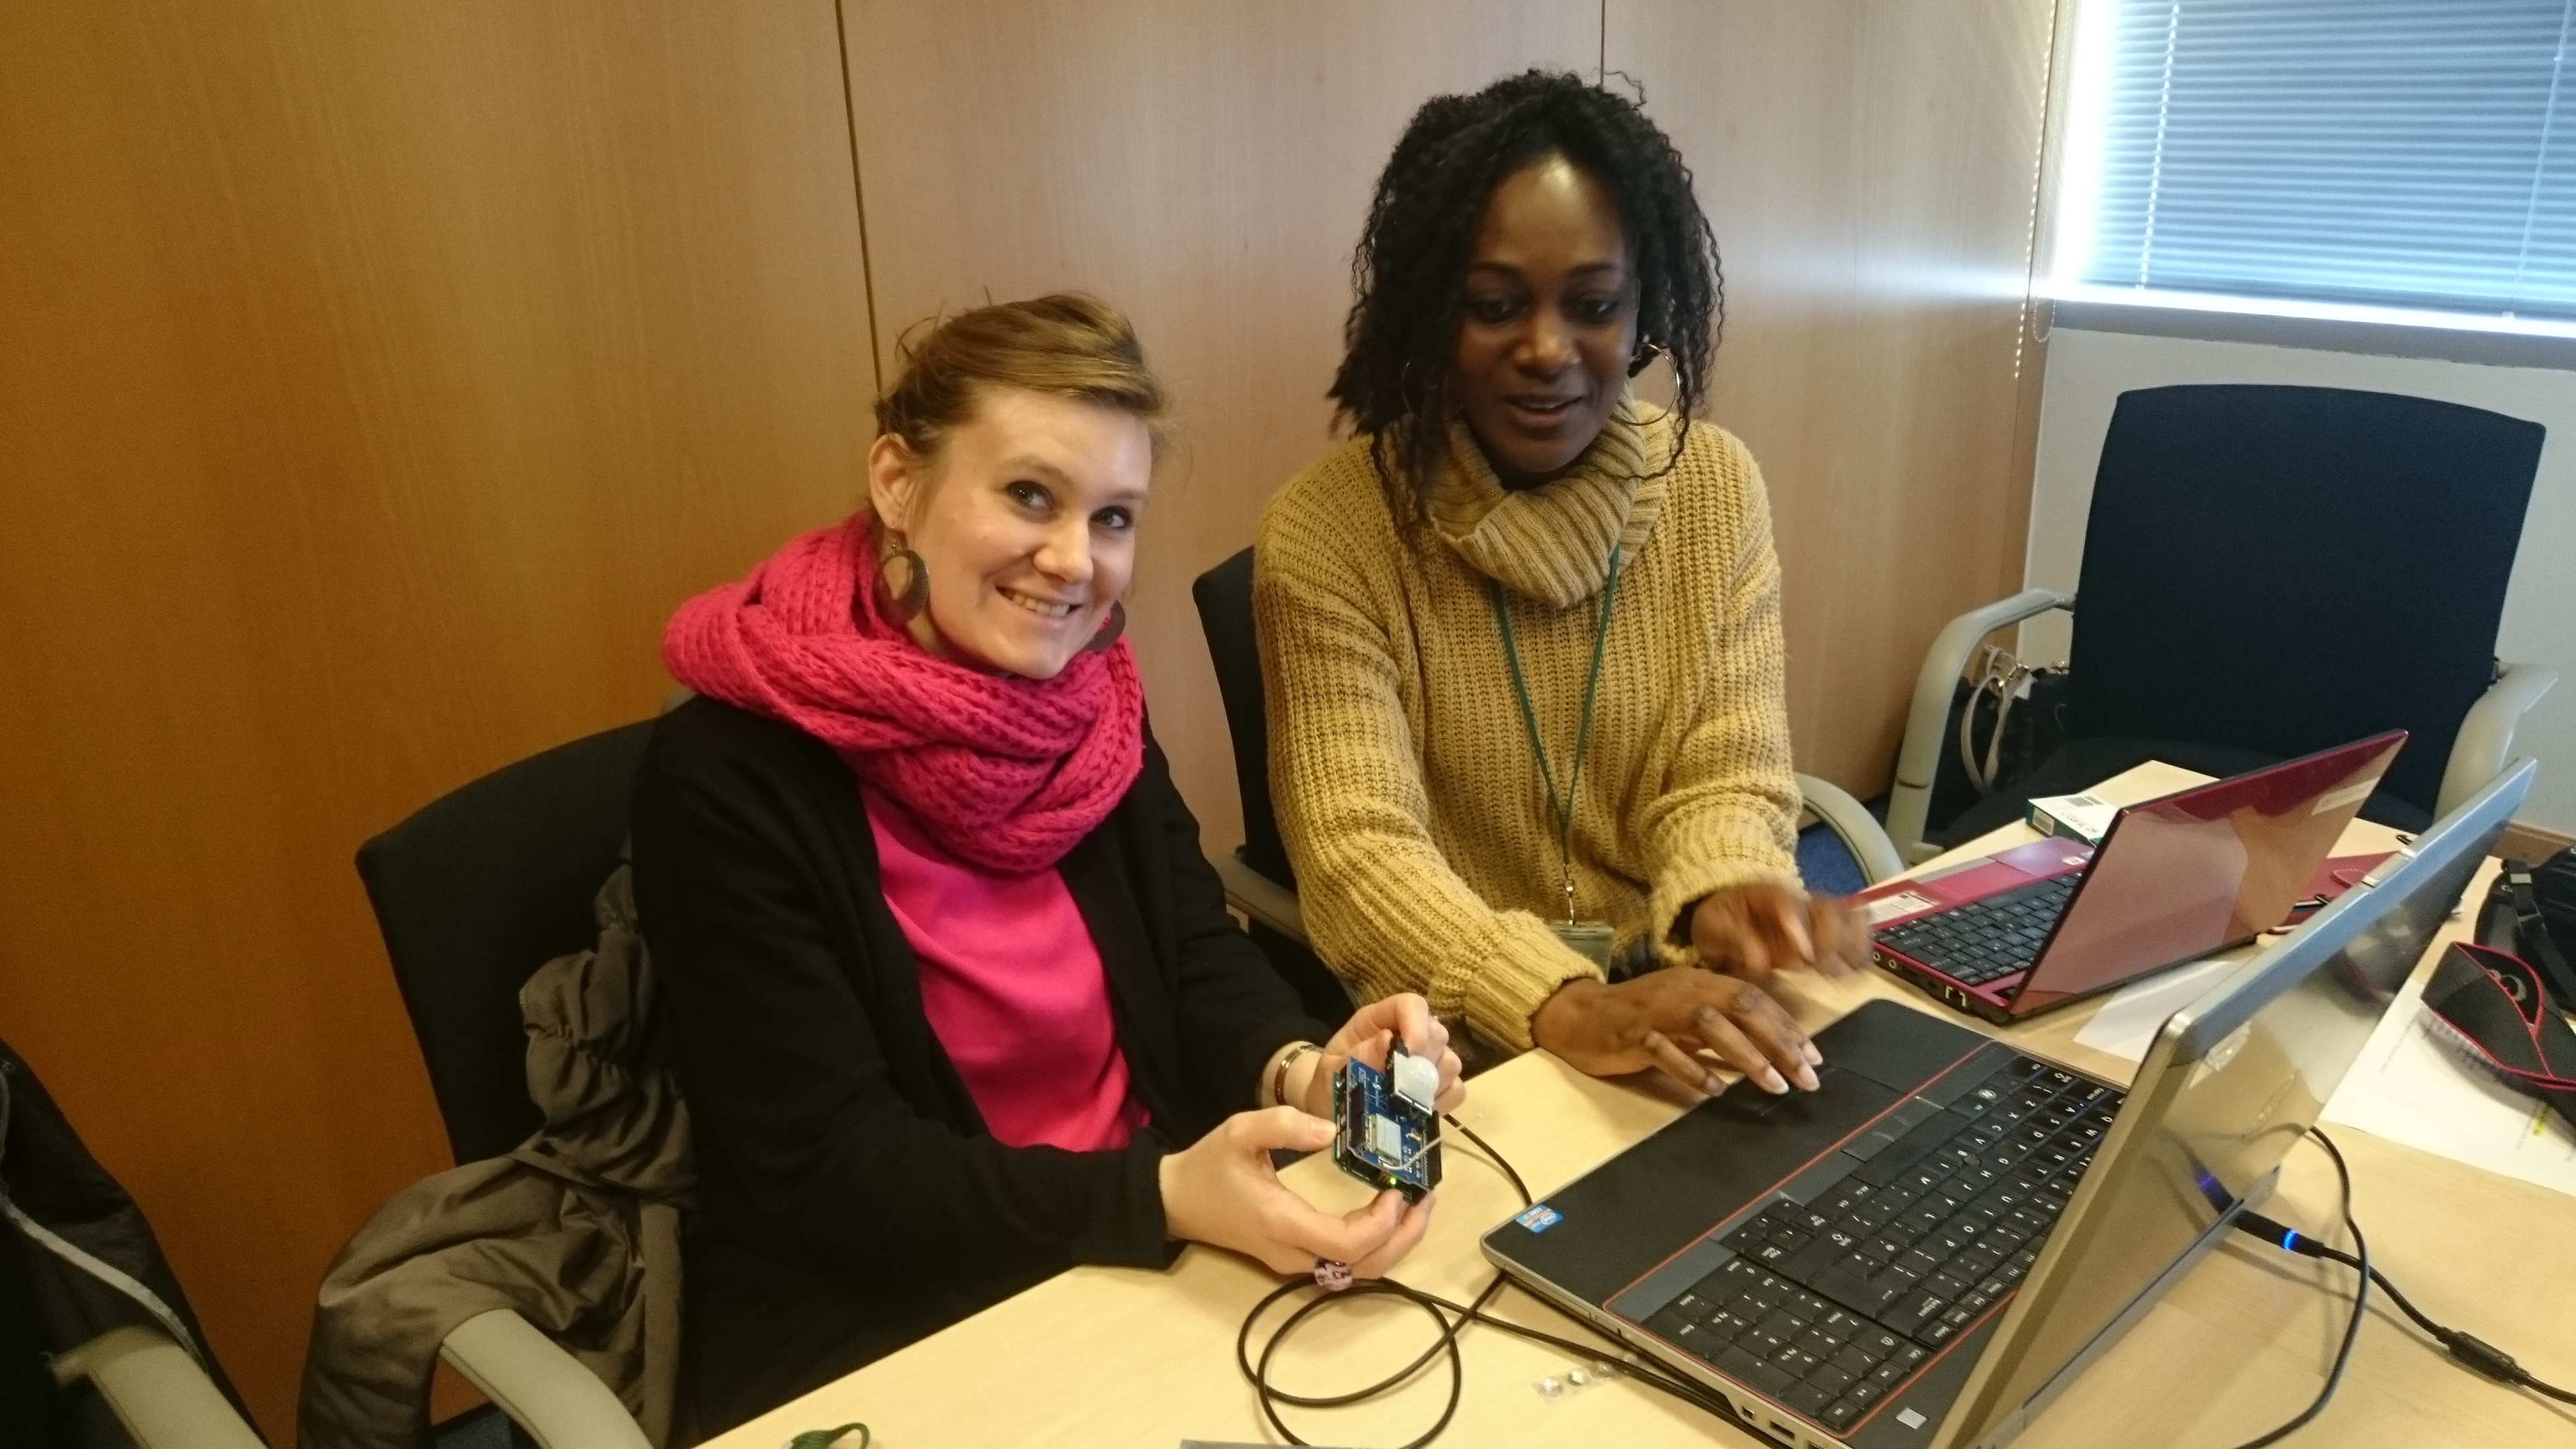 Two women showing their first IoT devices